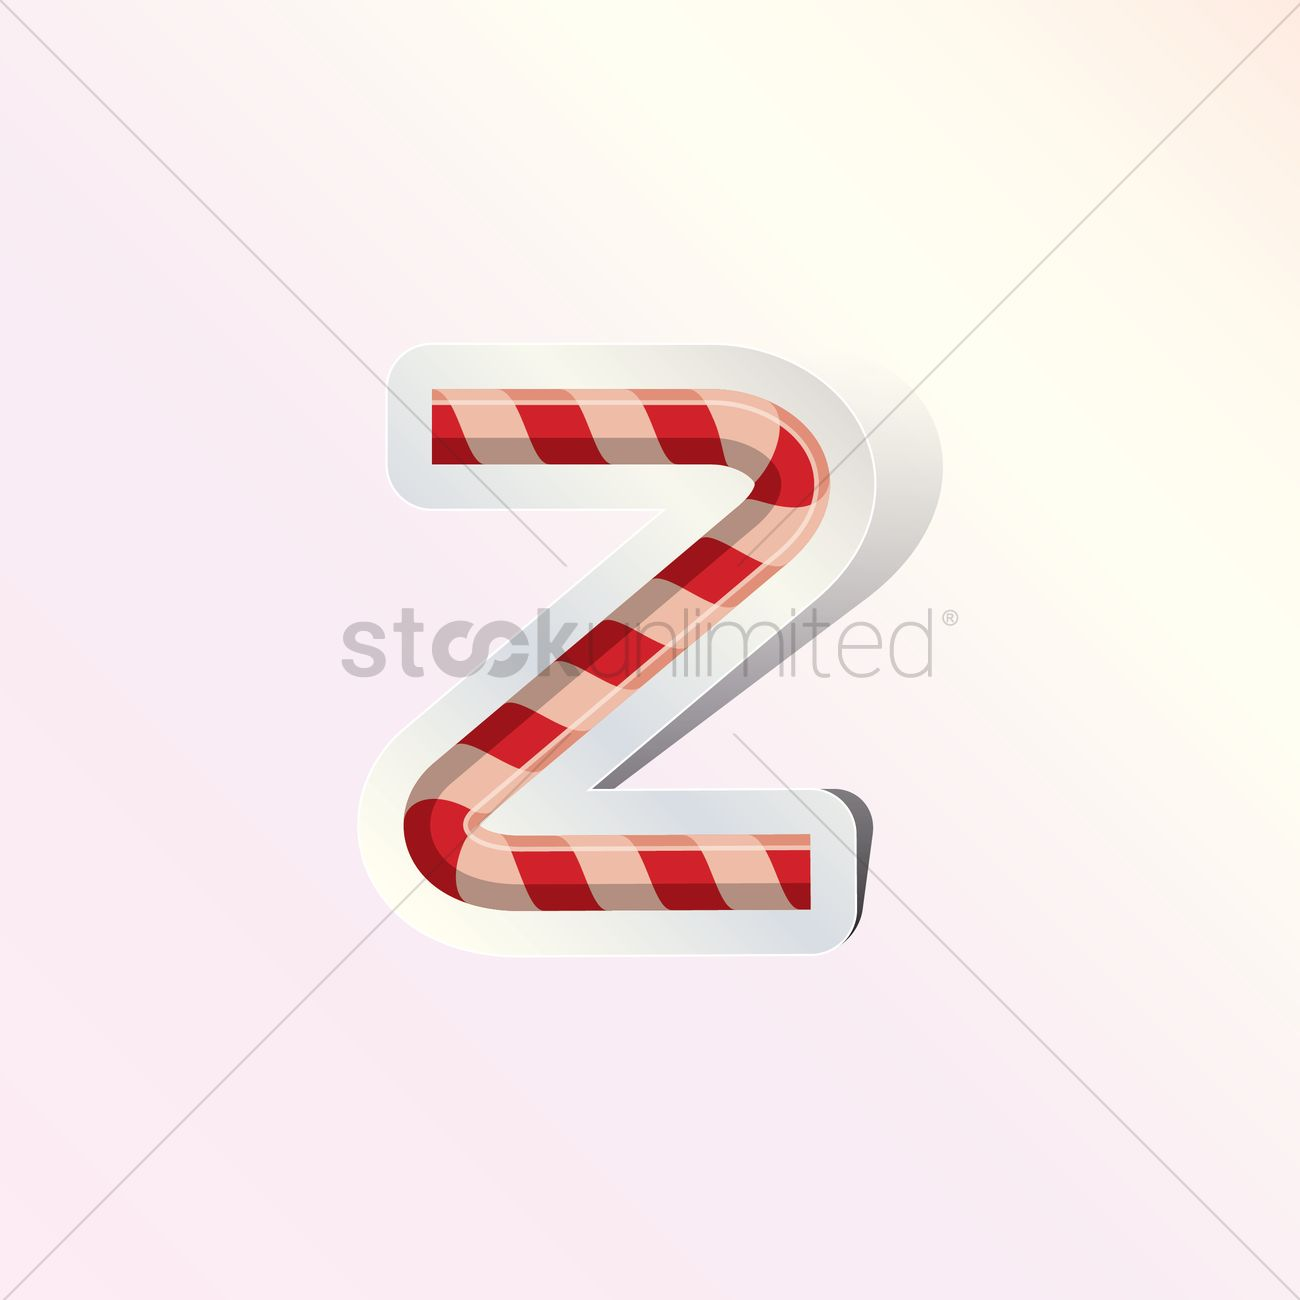 Alphabet small letter z in candy cane design Vector Image